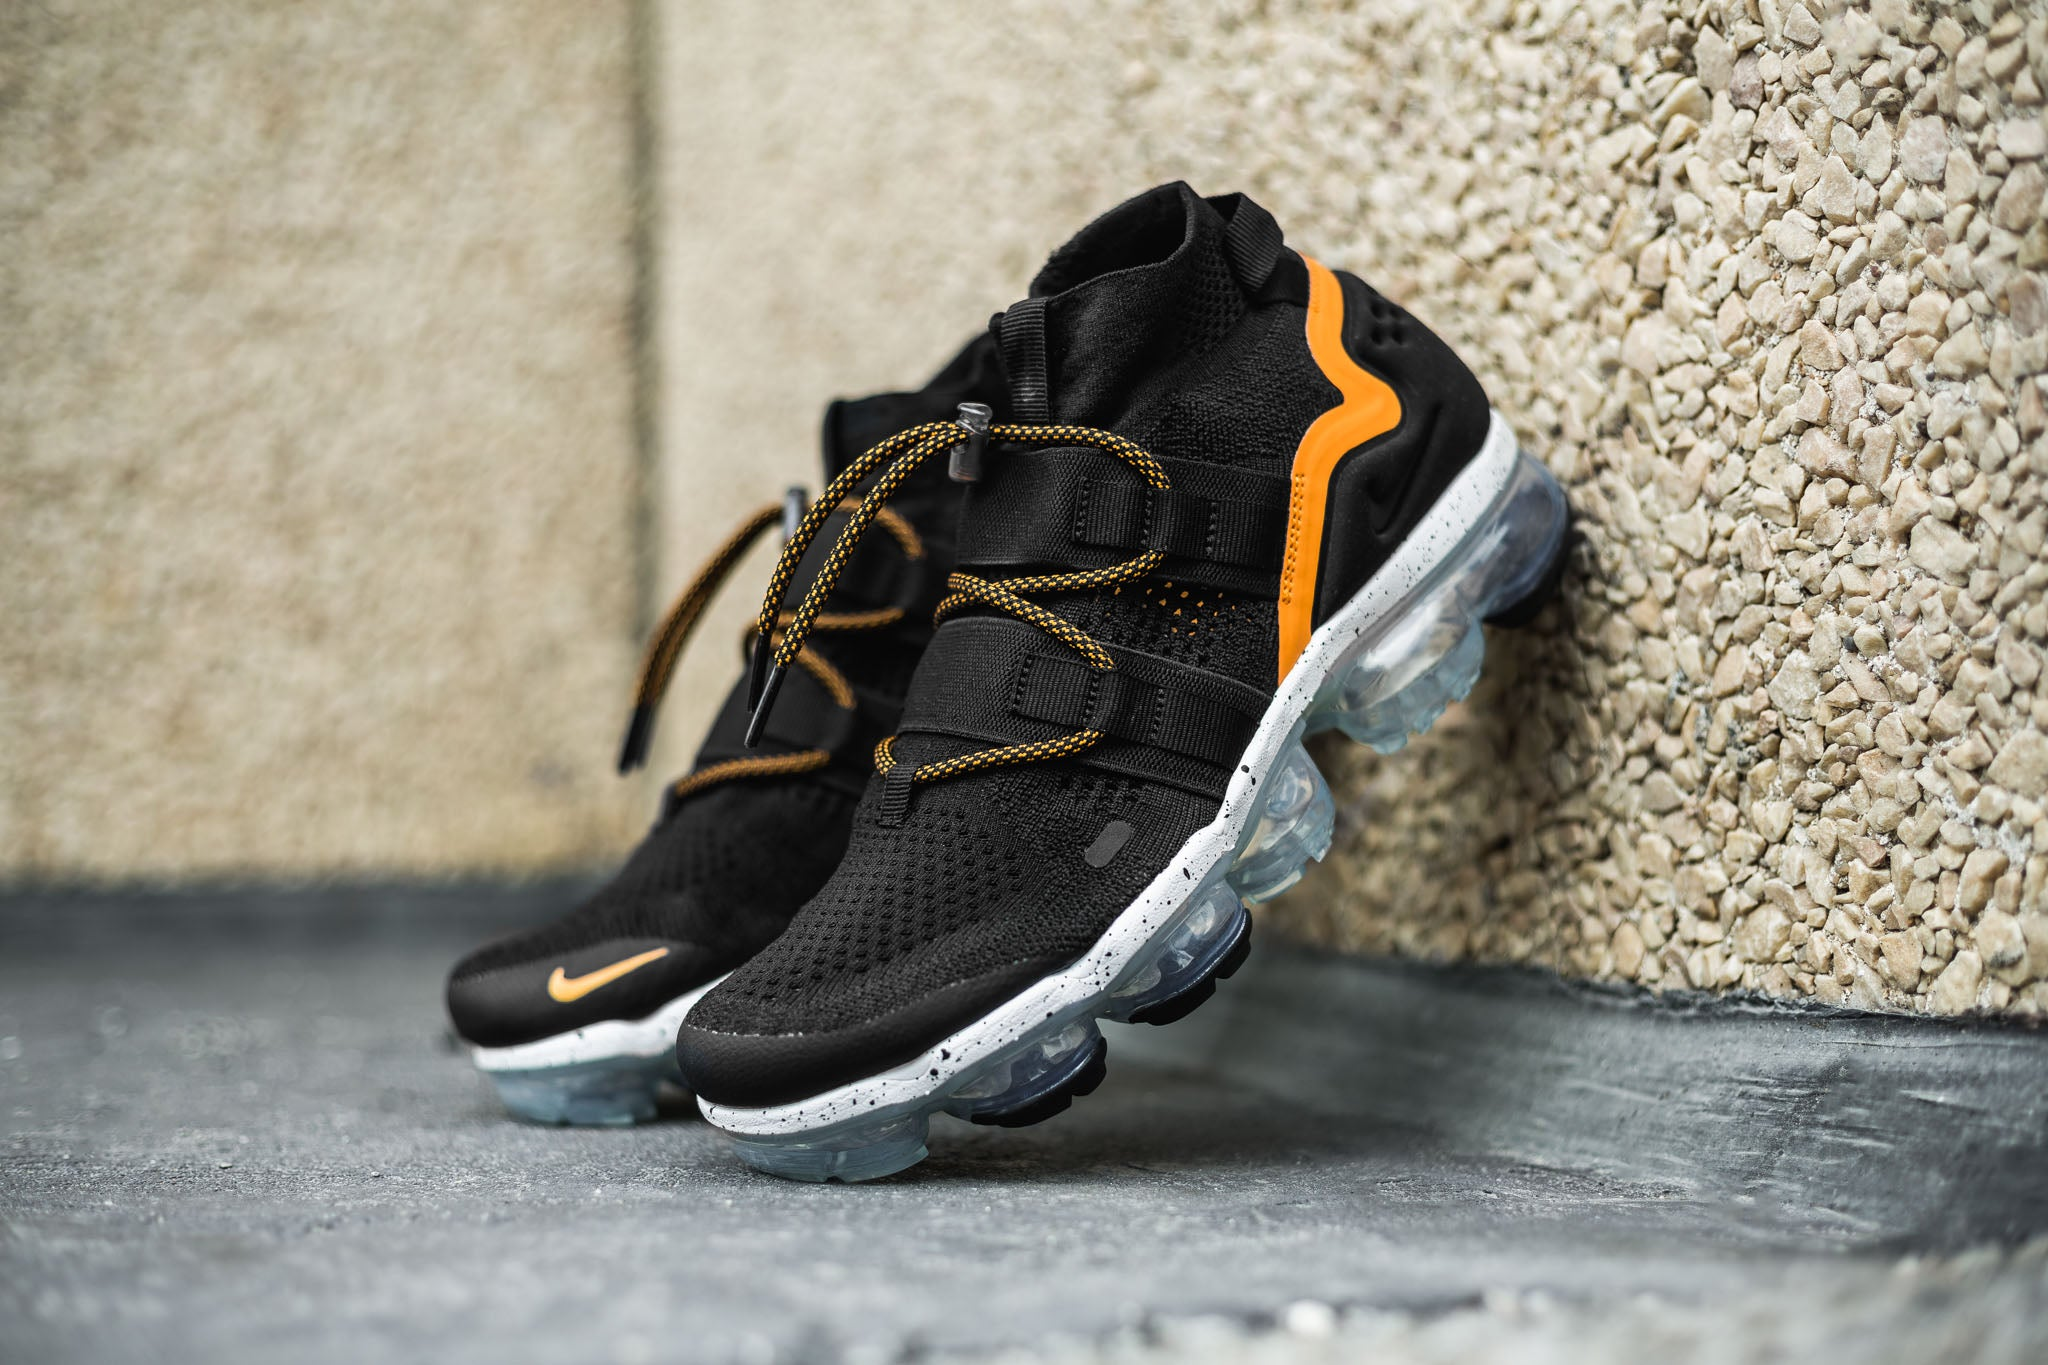 19bb1f5b11 The Air Vapormax FK Utility has a versatile lacing system with slotted  overlays for a new way to adjust the overall upper fit. Produced in a  three-quarter ...